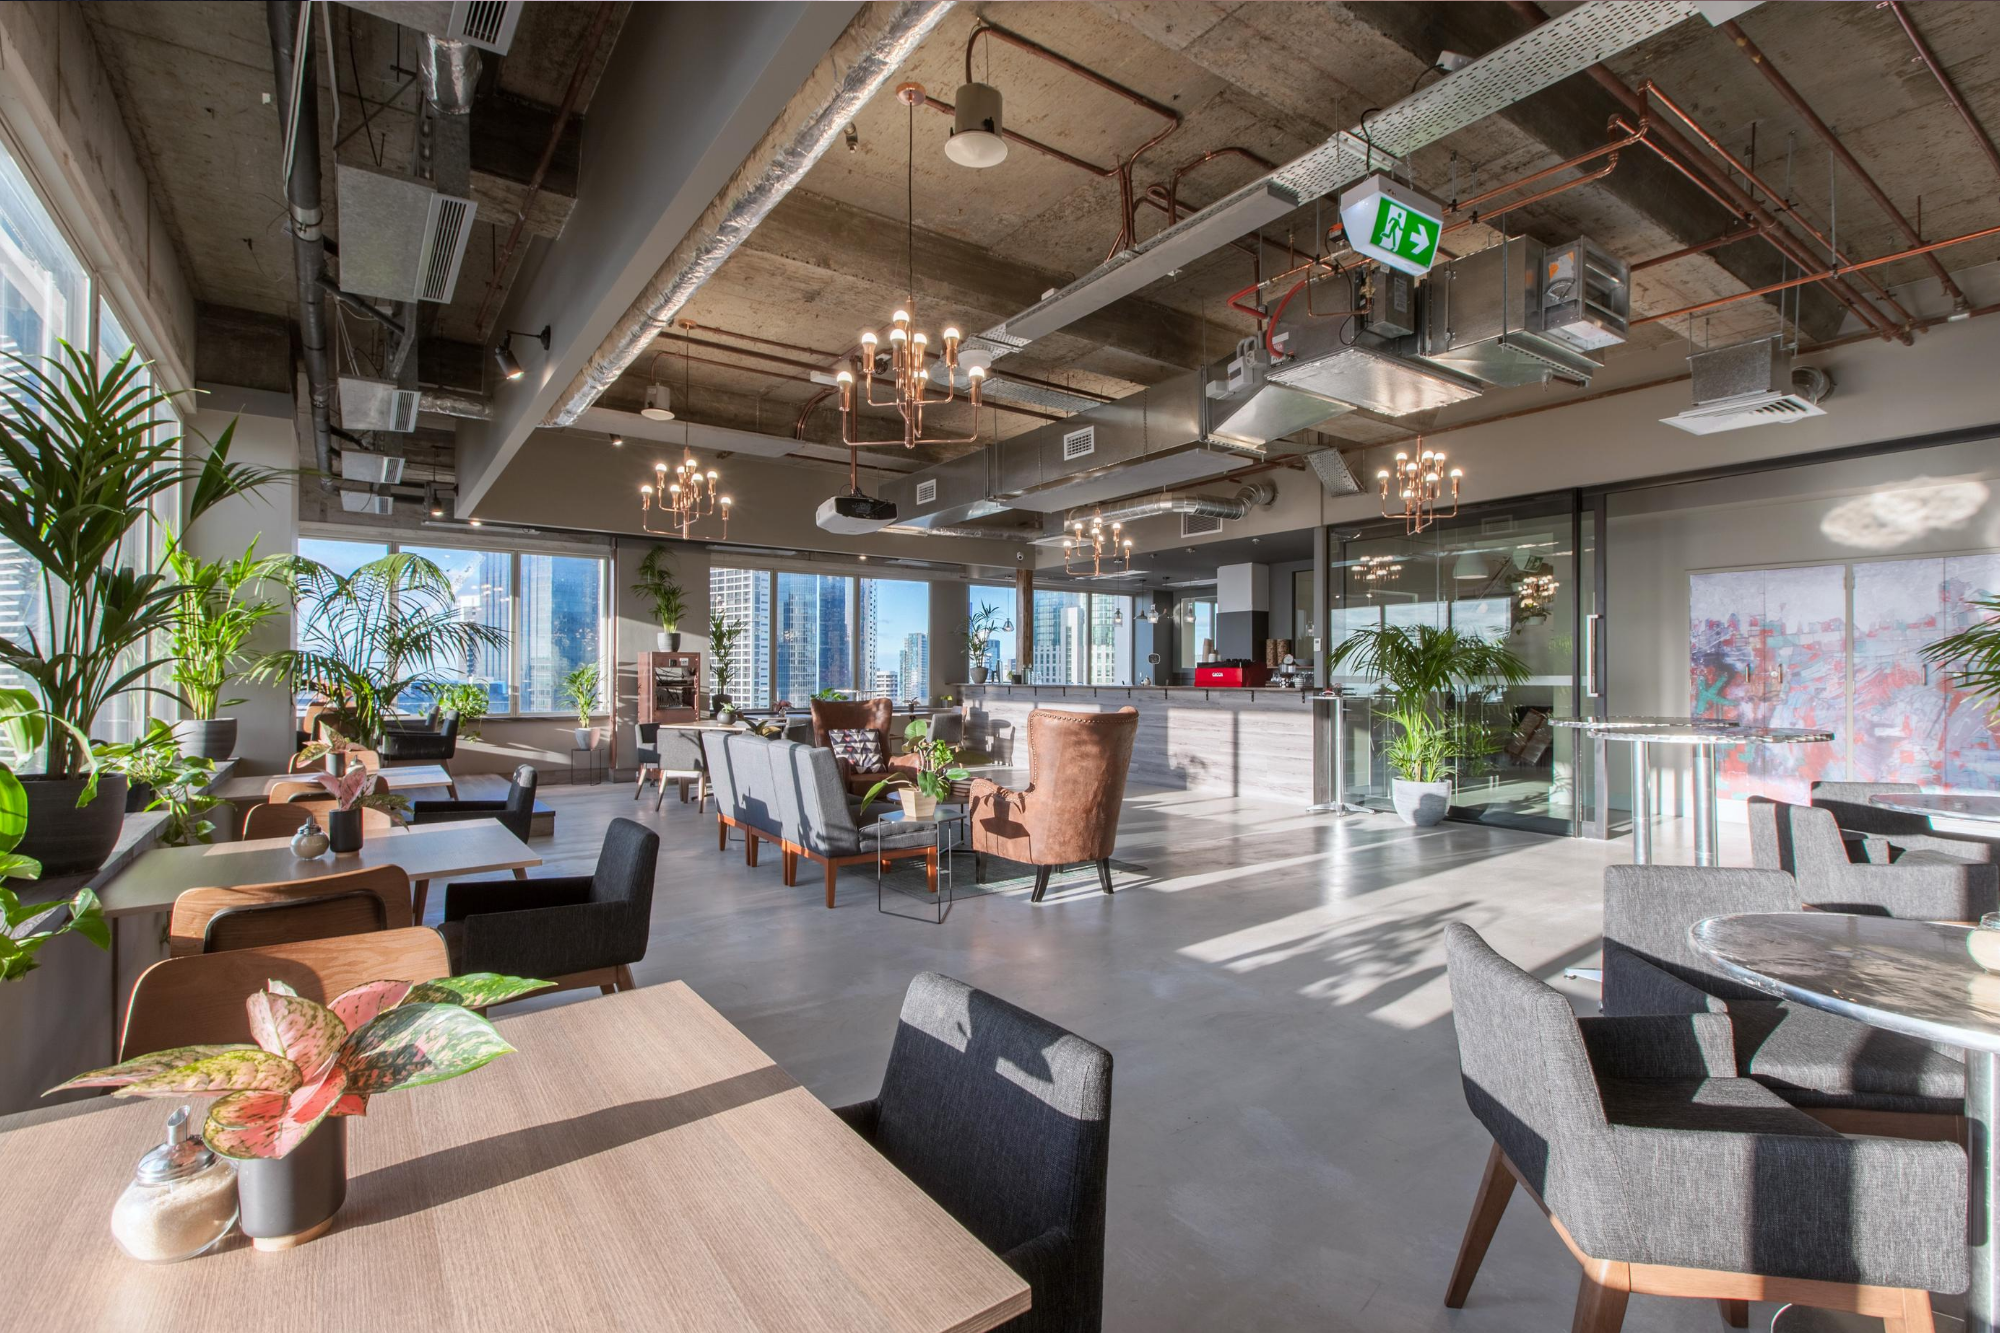 Melbourne CBD event space in cafe style seating